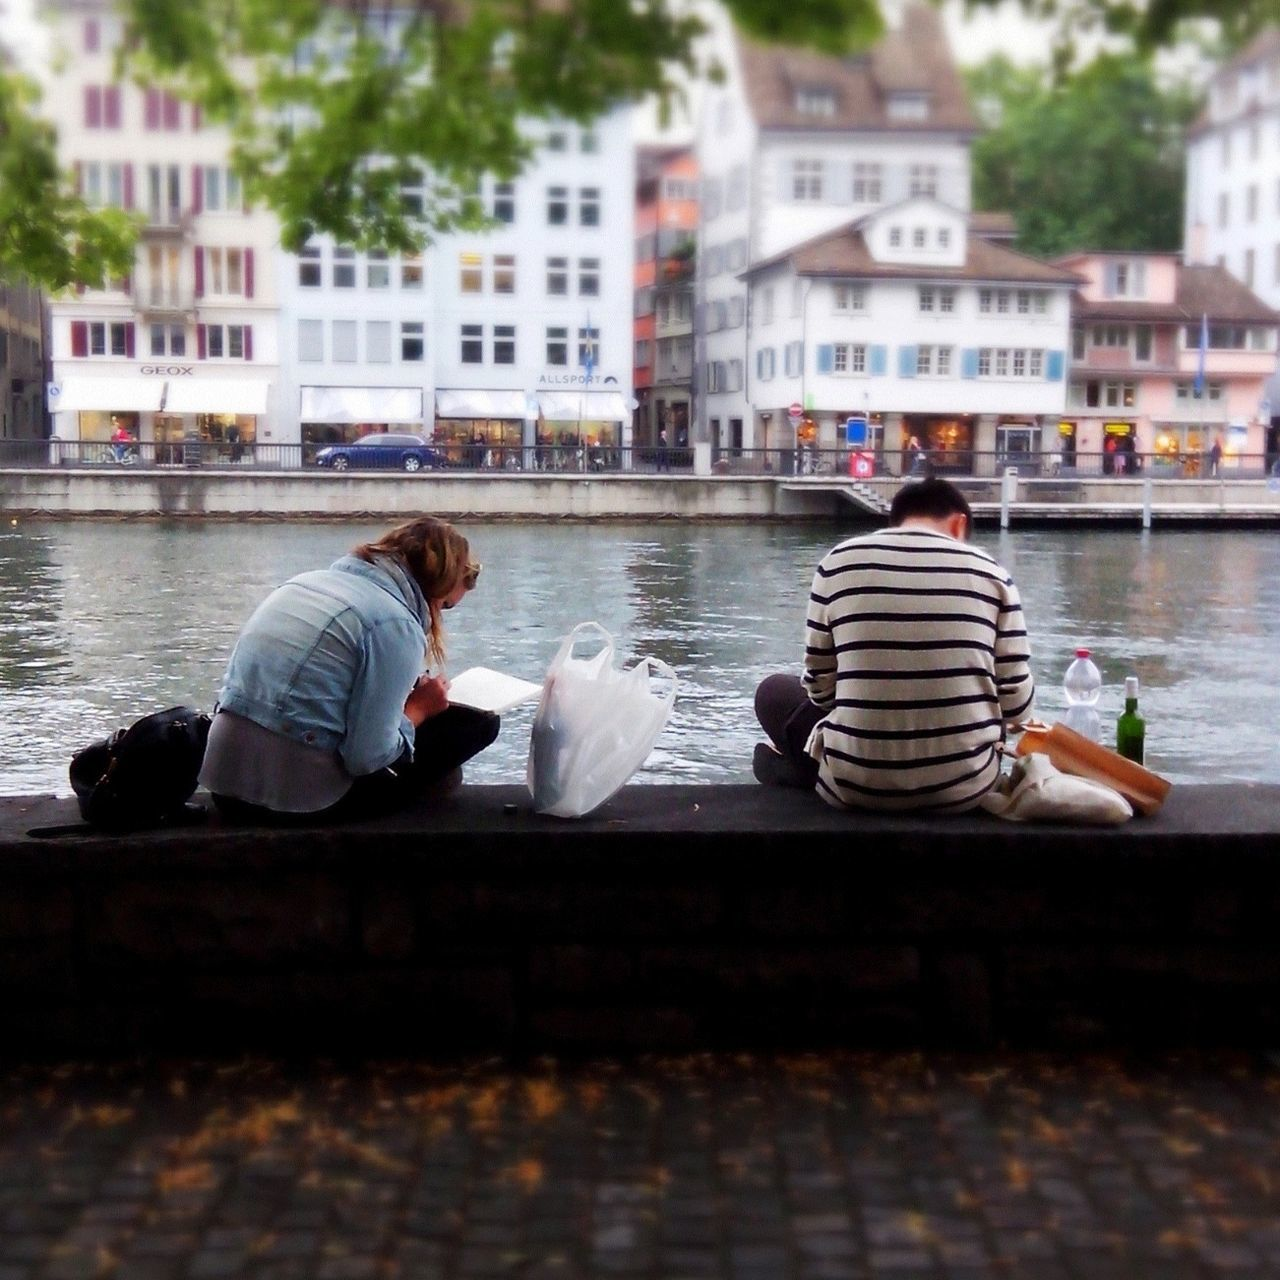 water, real people, rear view, sitting, built structure, building exterior, architecture, two people, togetherness, day, men, leisure activity, canal, casual clothing, women, nautical vessel, full length, lifestyles, outdoors, adult, people